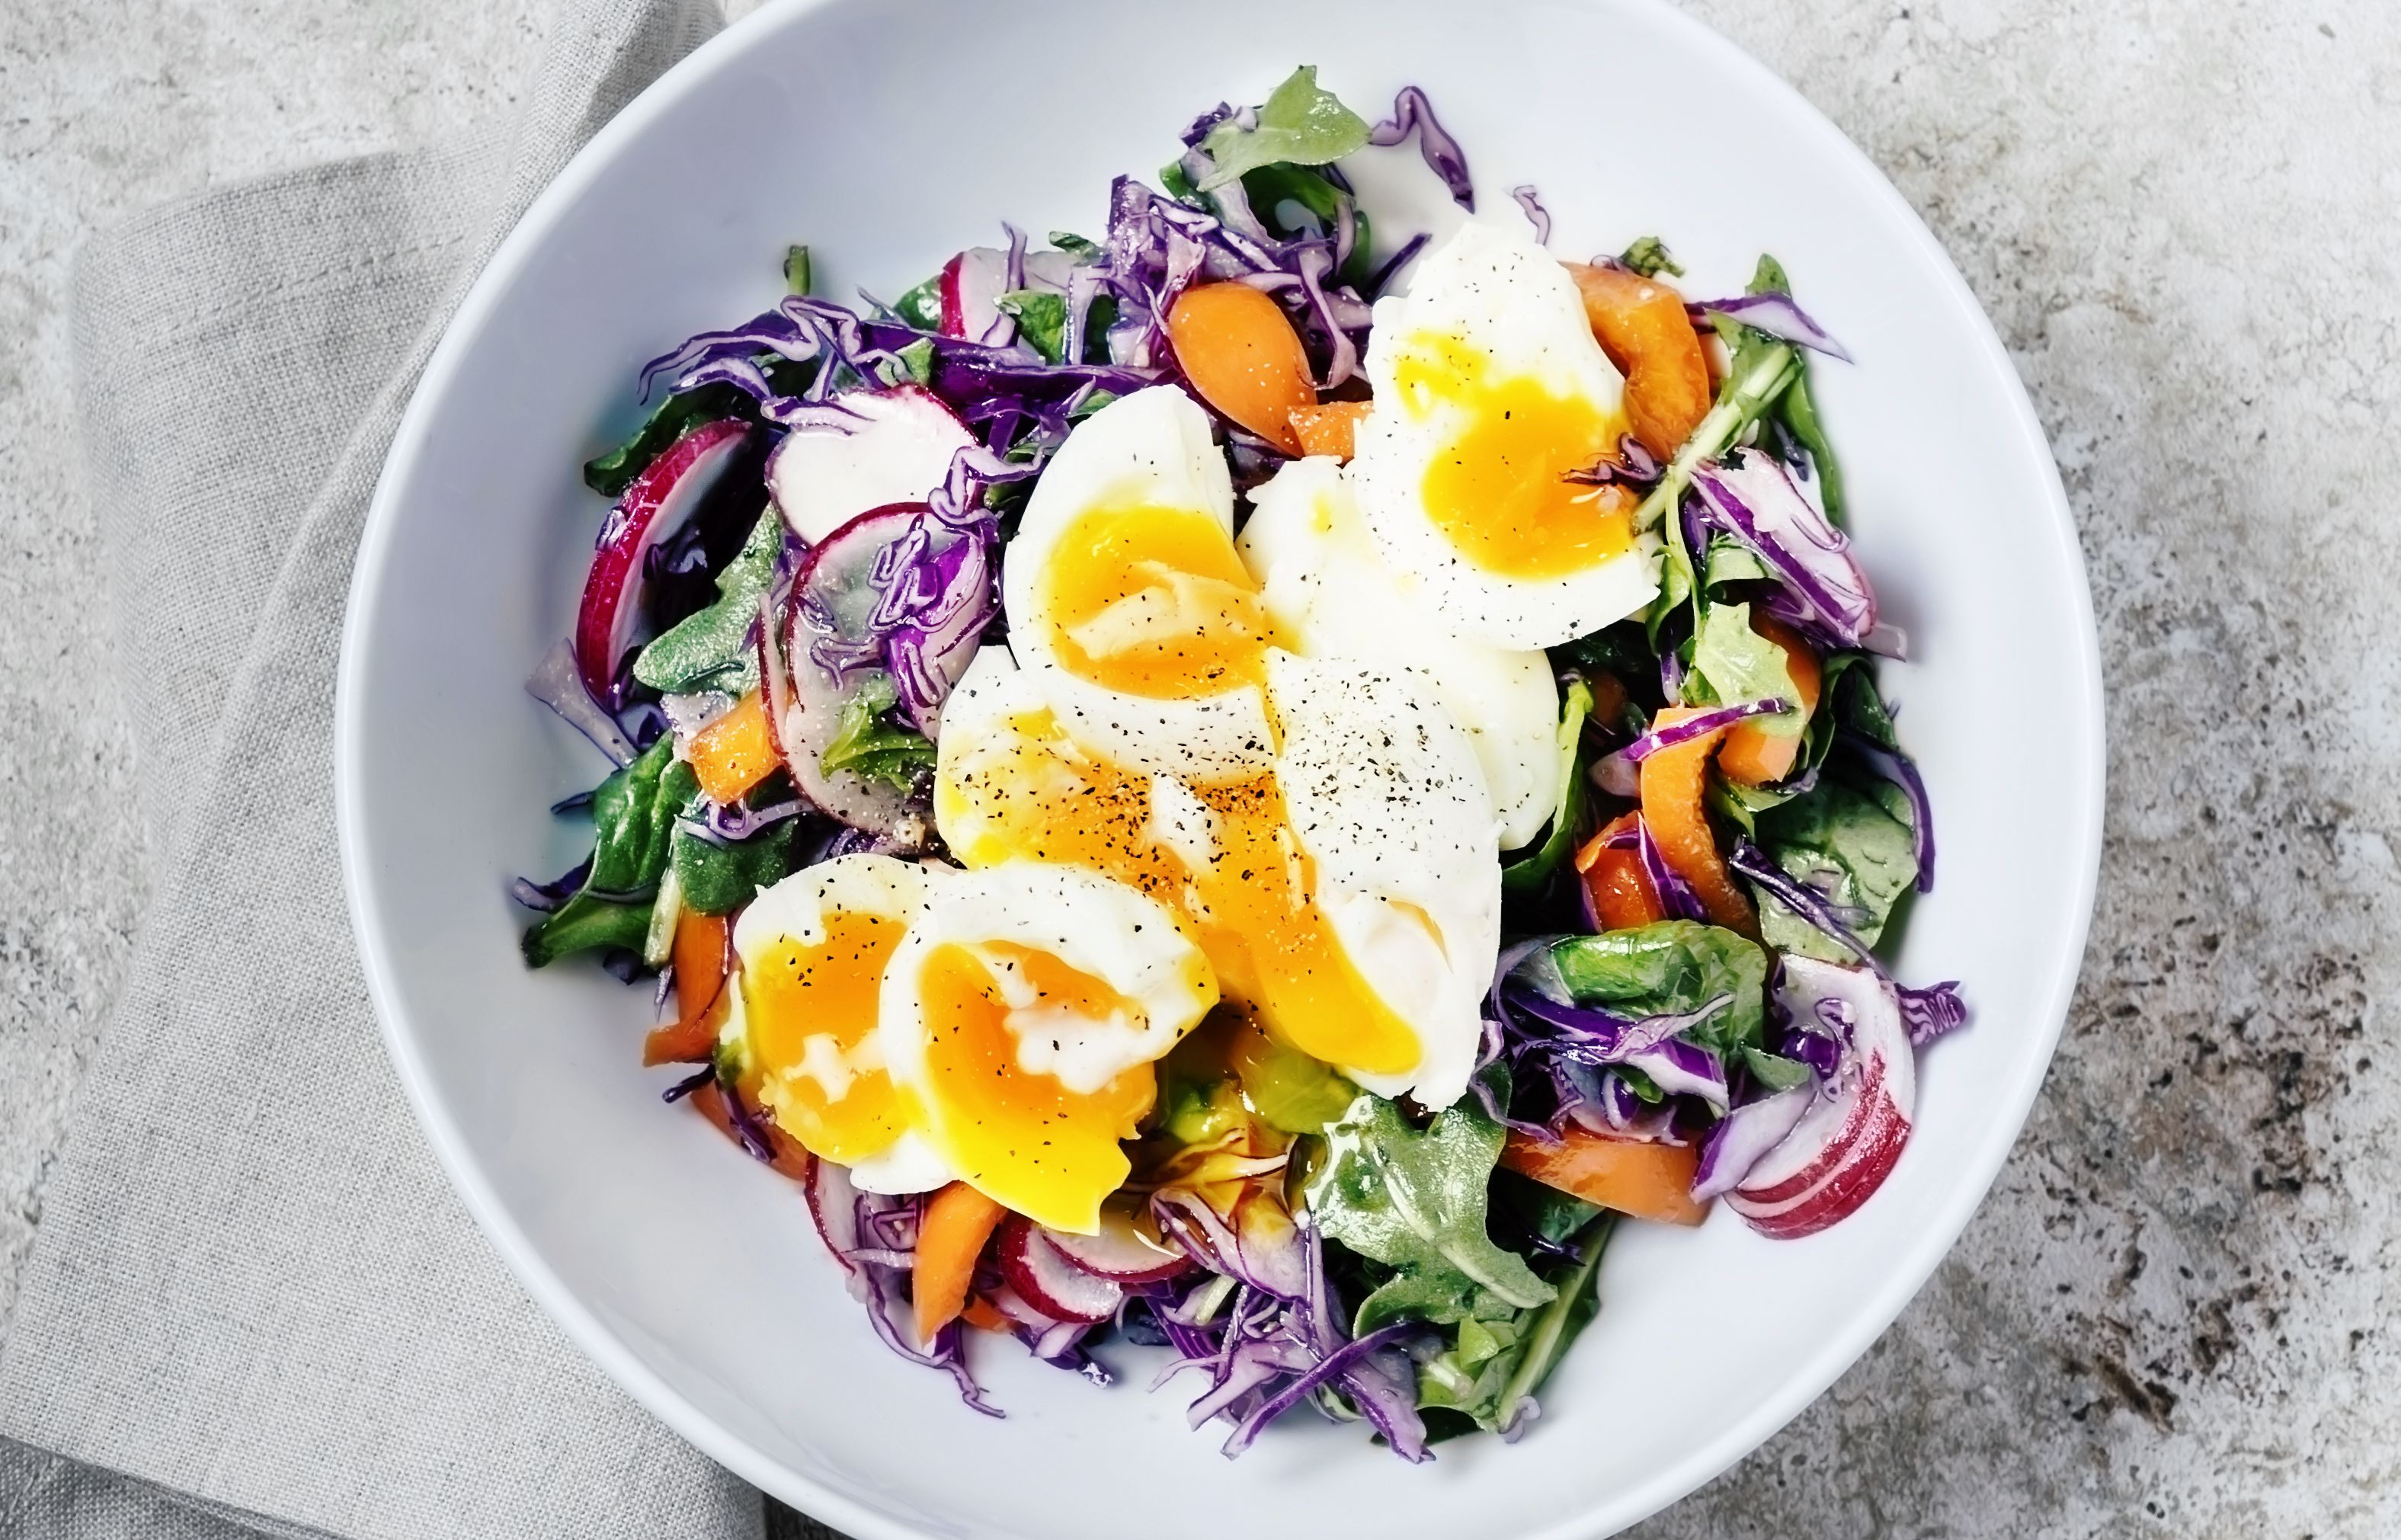 10 Hard-boiled Egg Recipes That'll Convince You to Make a Batch Every Week